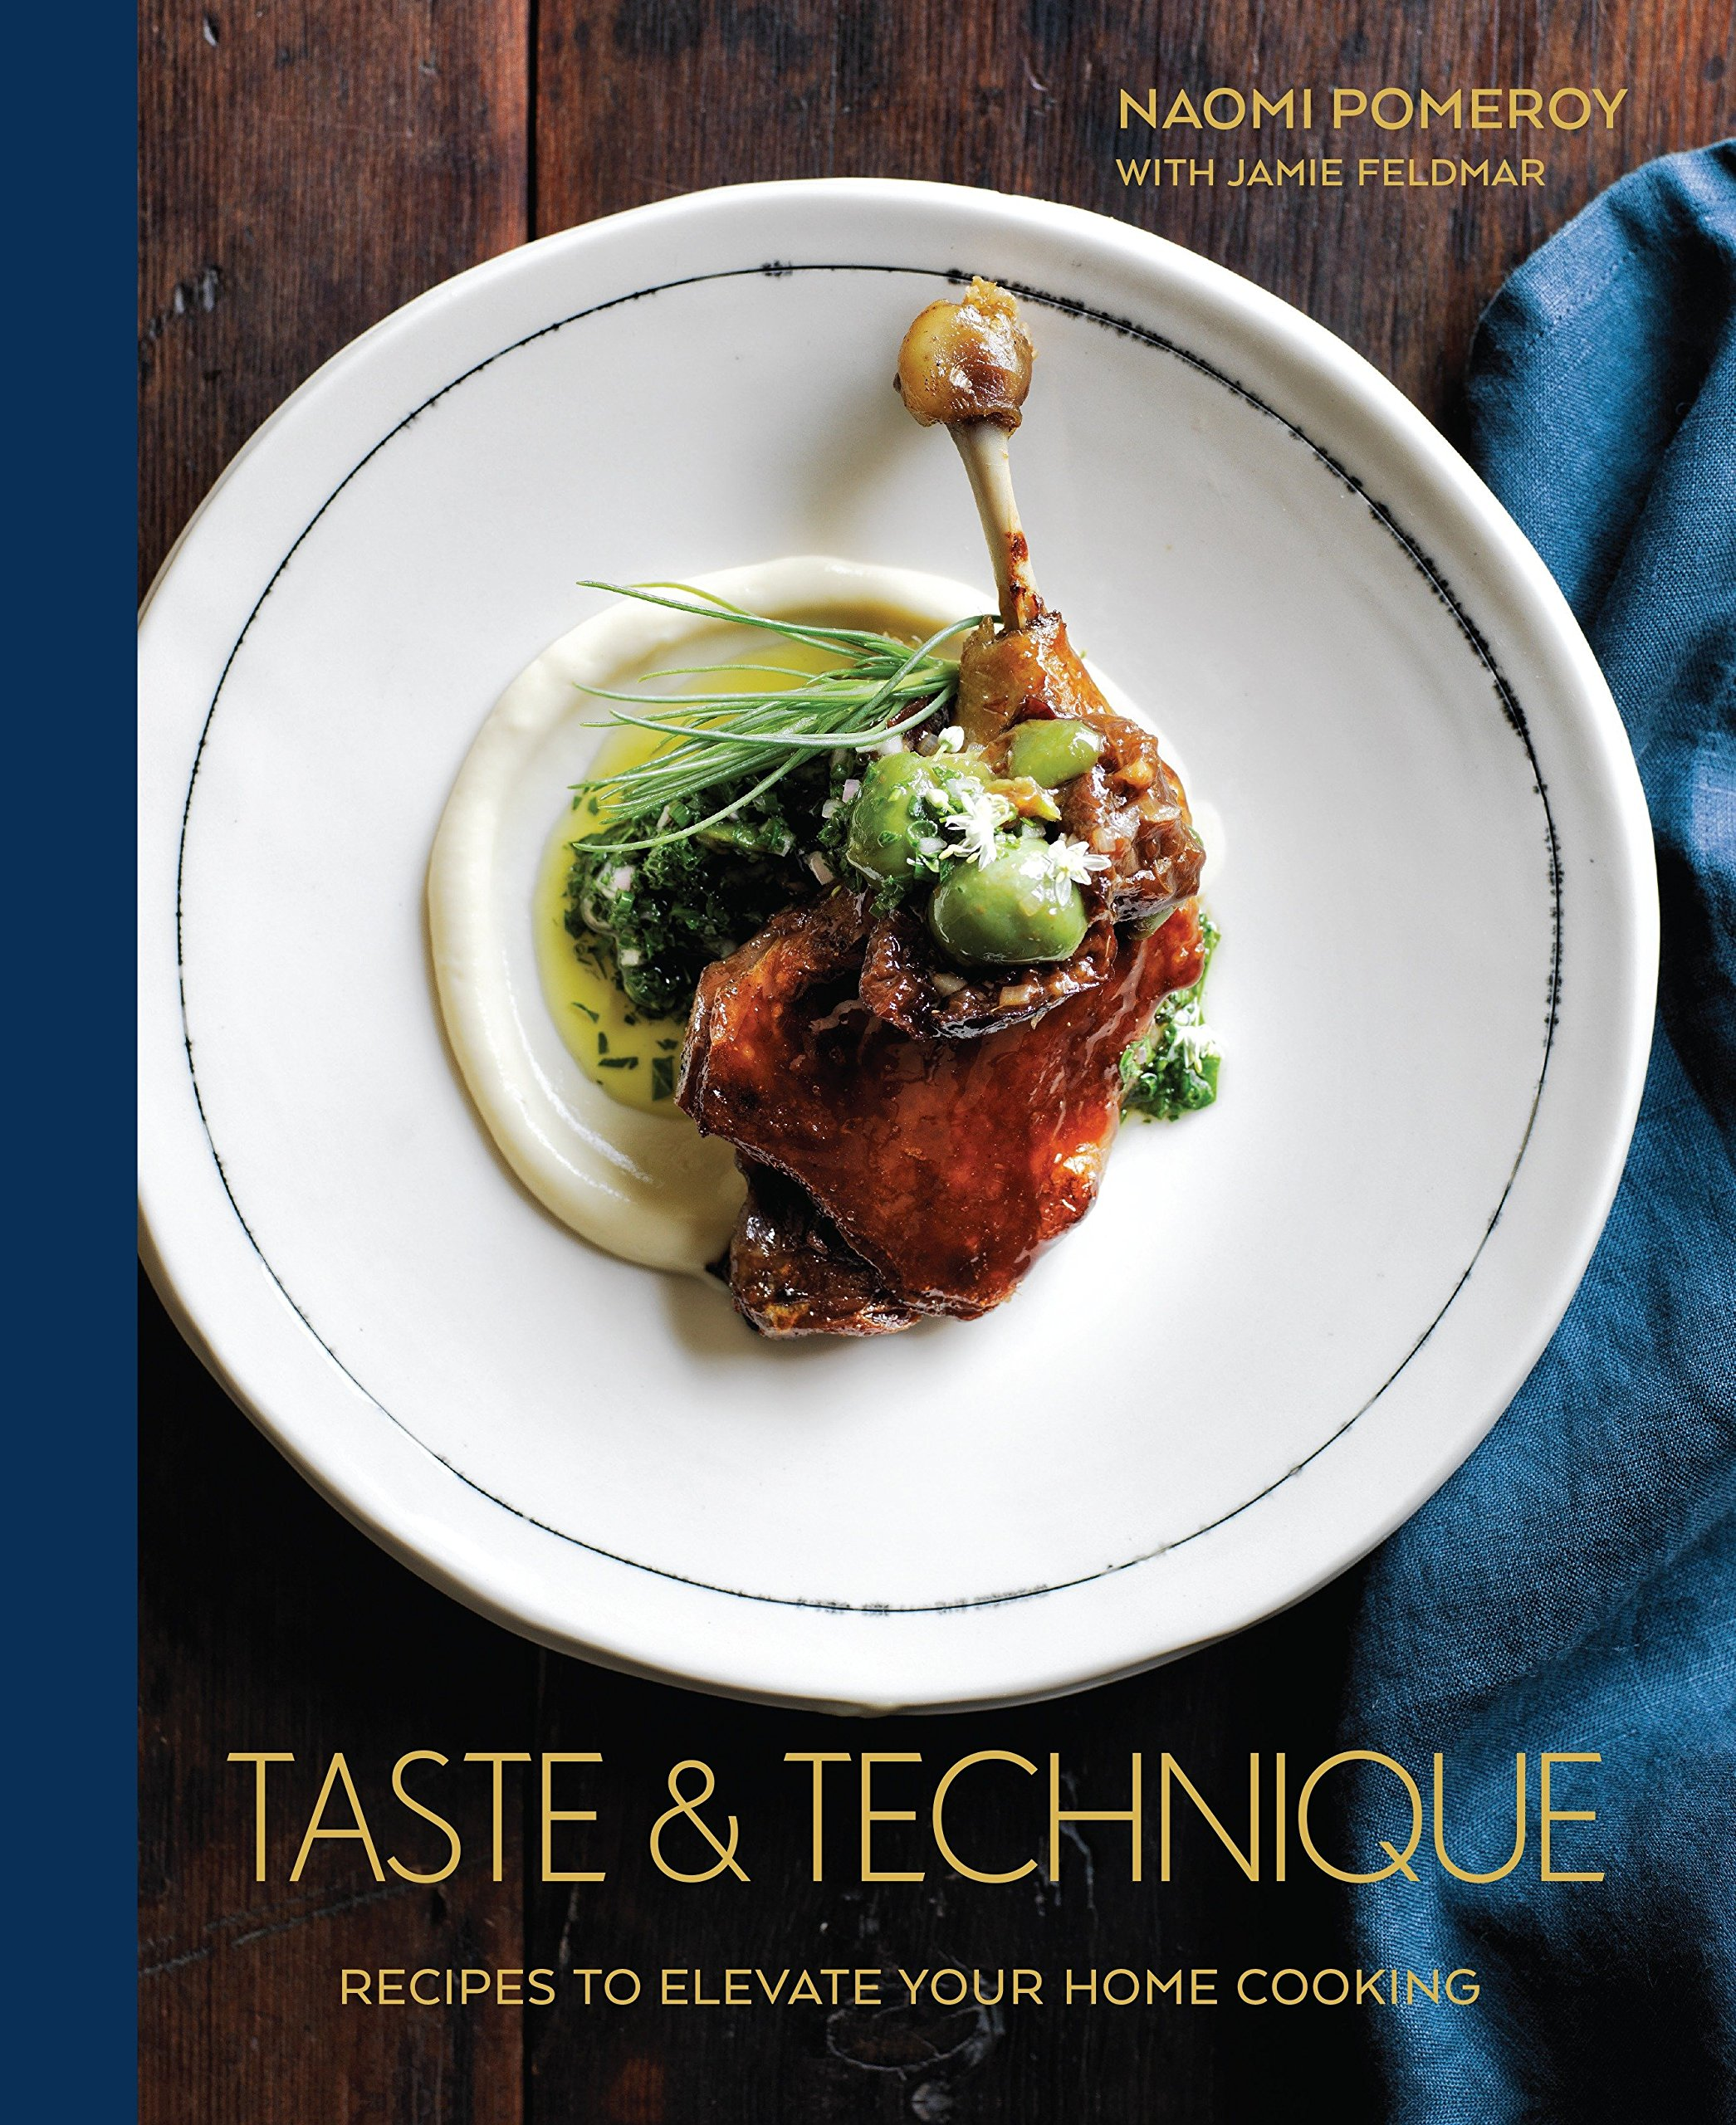 Taste & Technique: Recipes to Elevate Your Home Cooking [A Cookbook] by Ten Speed Press